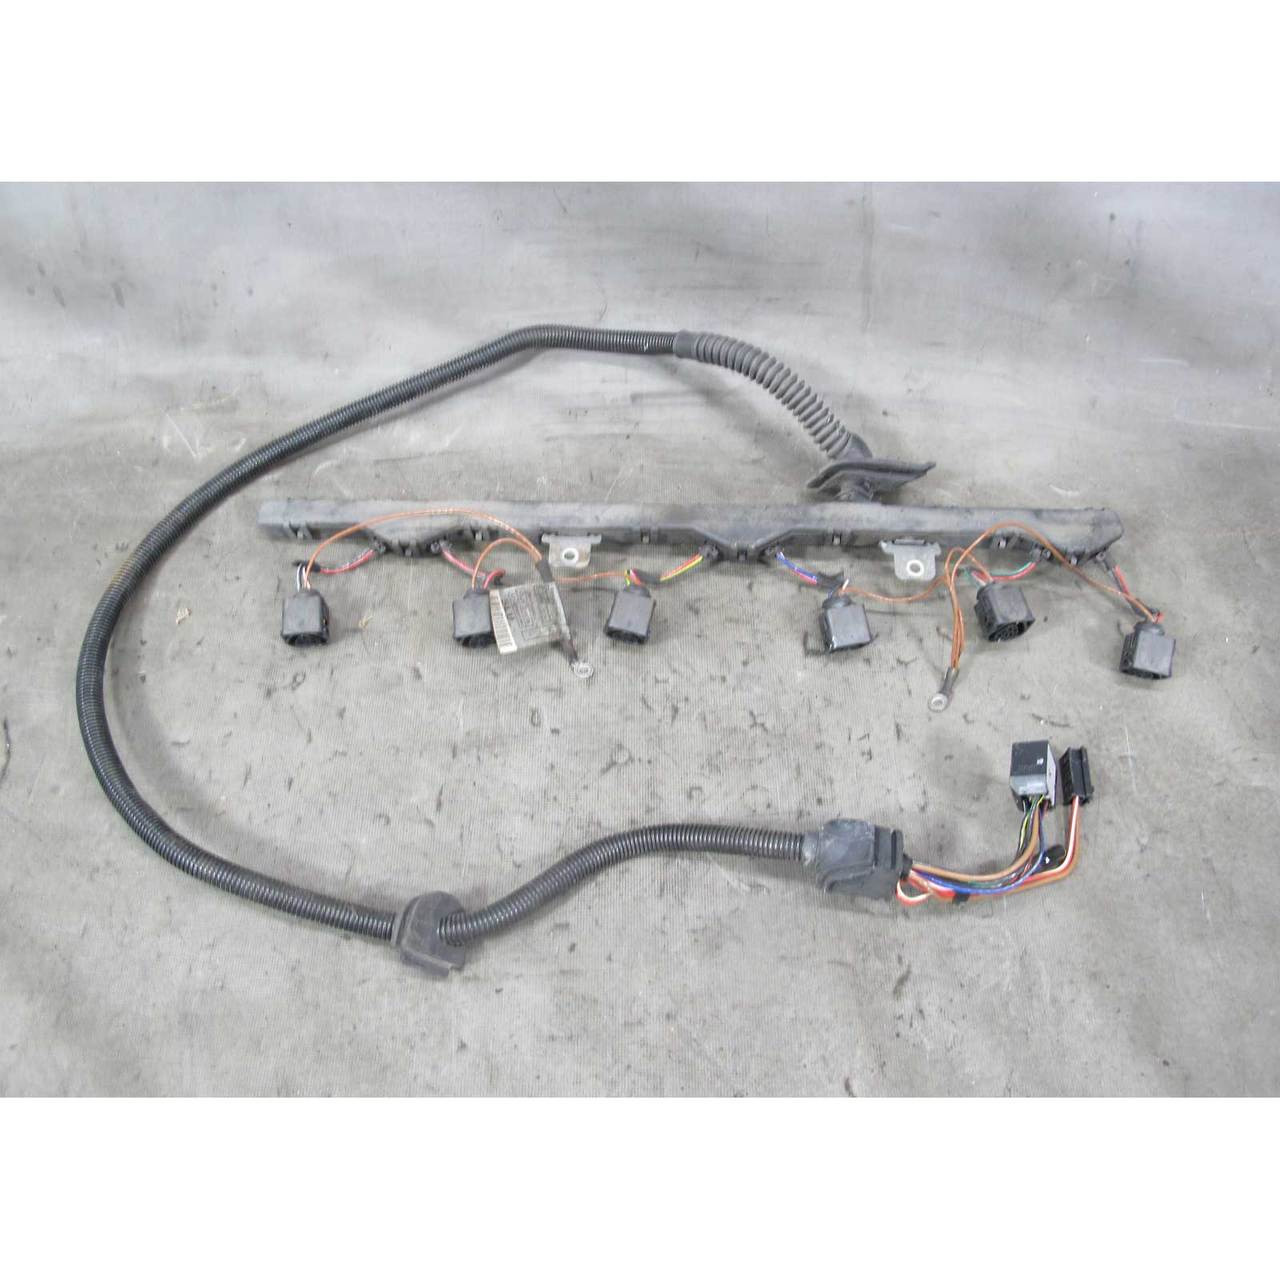 hight resolution of 2003 2006 bmw e46 325i sulev m56 2 5l engine ignition coil wiring harness oem